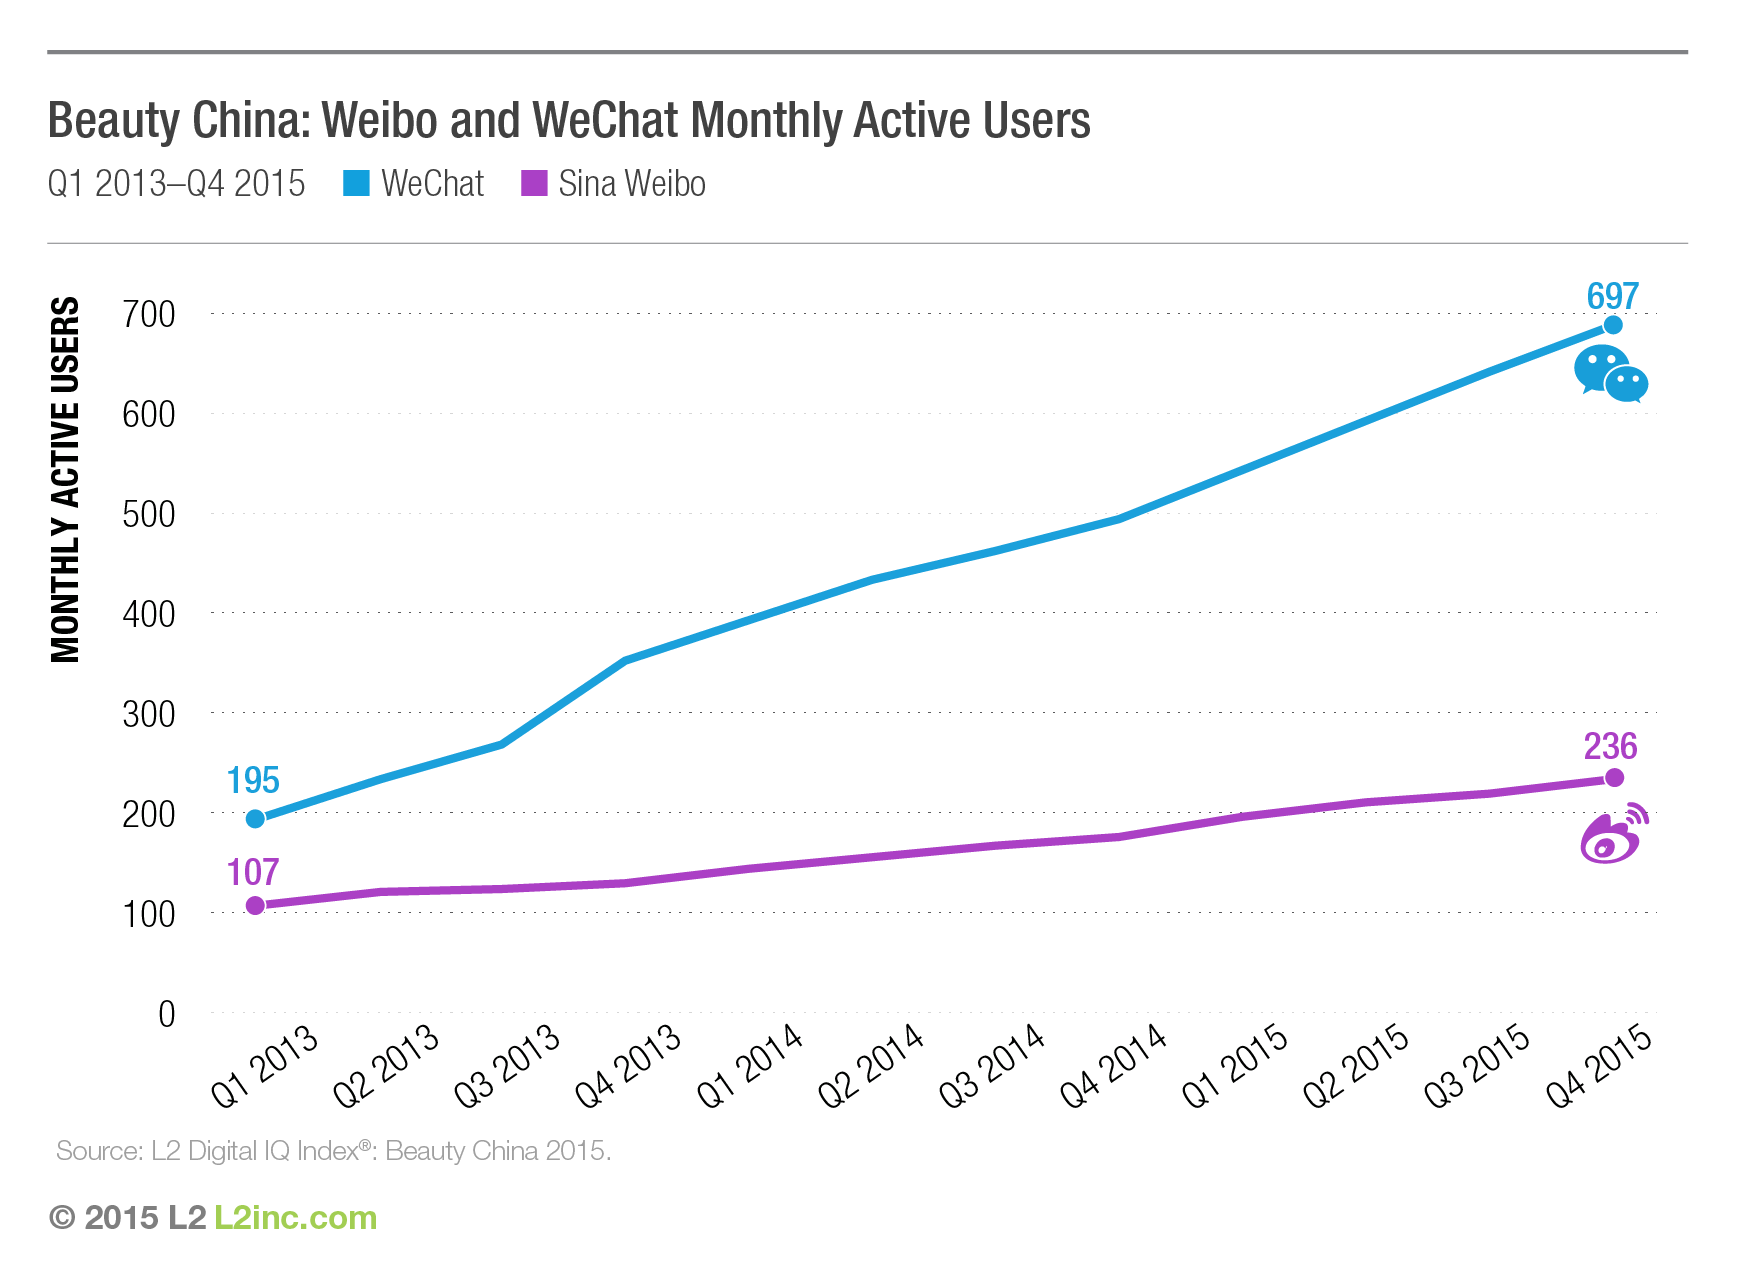 Monthly Active Users on WeChat and Weibo (2013-2015)